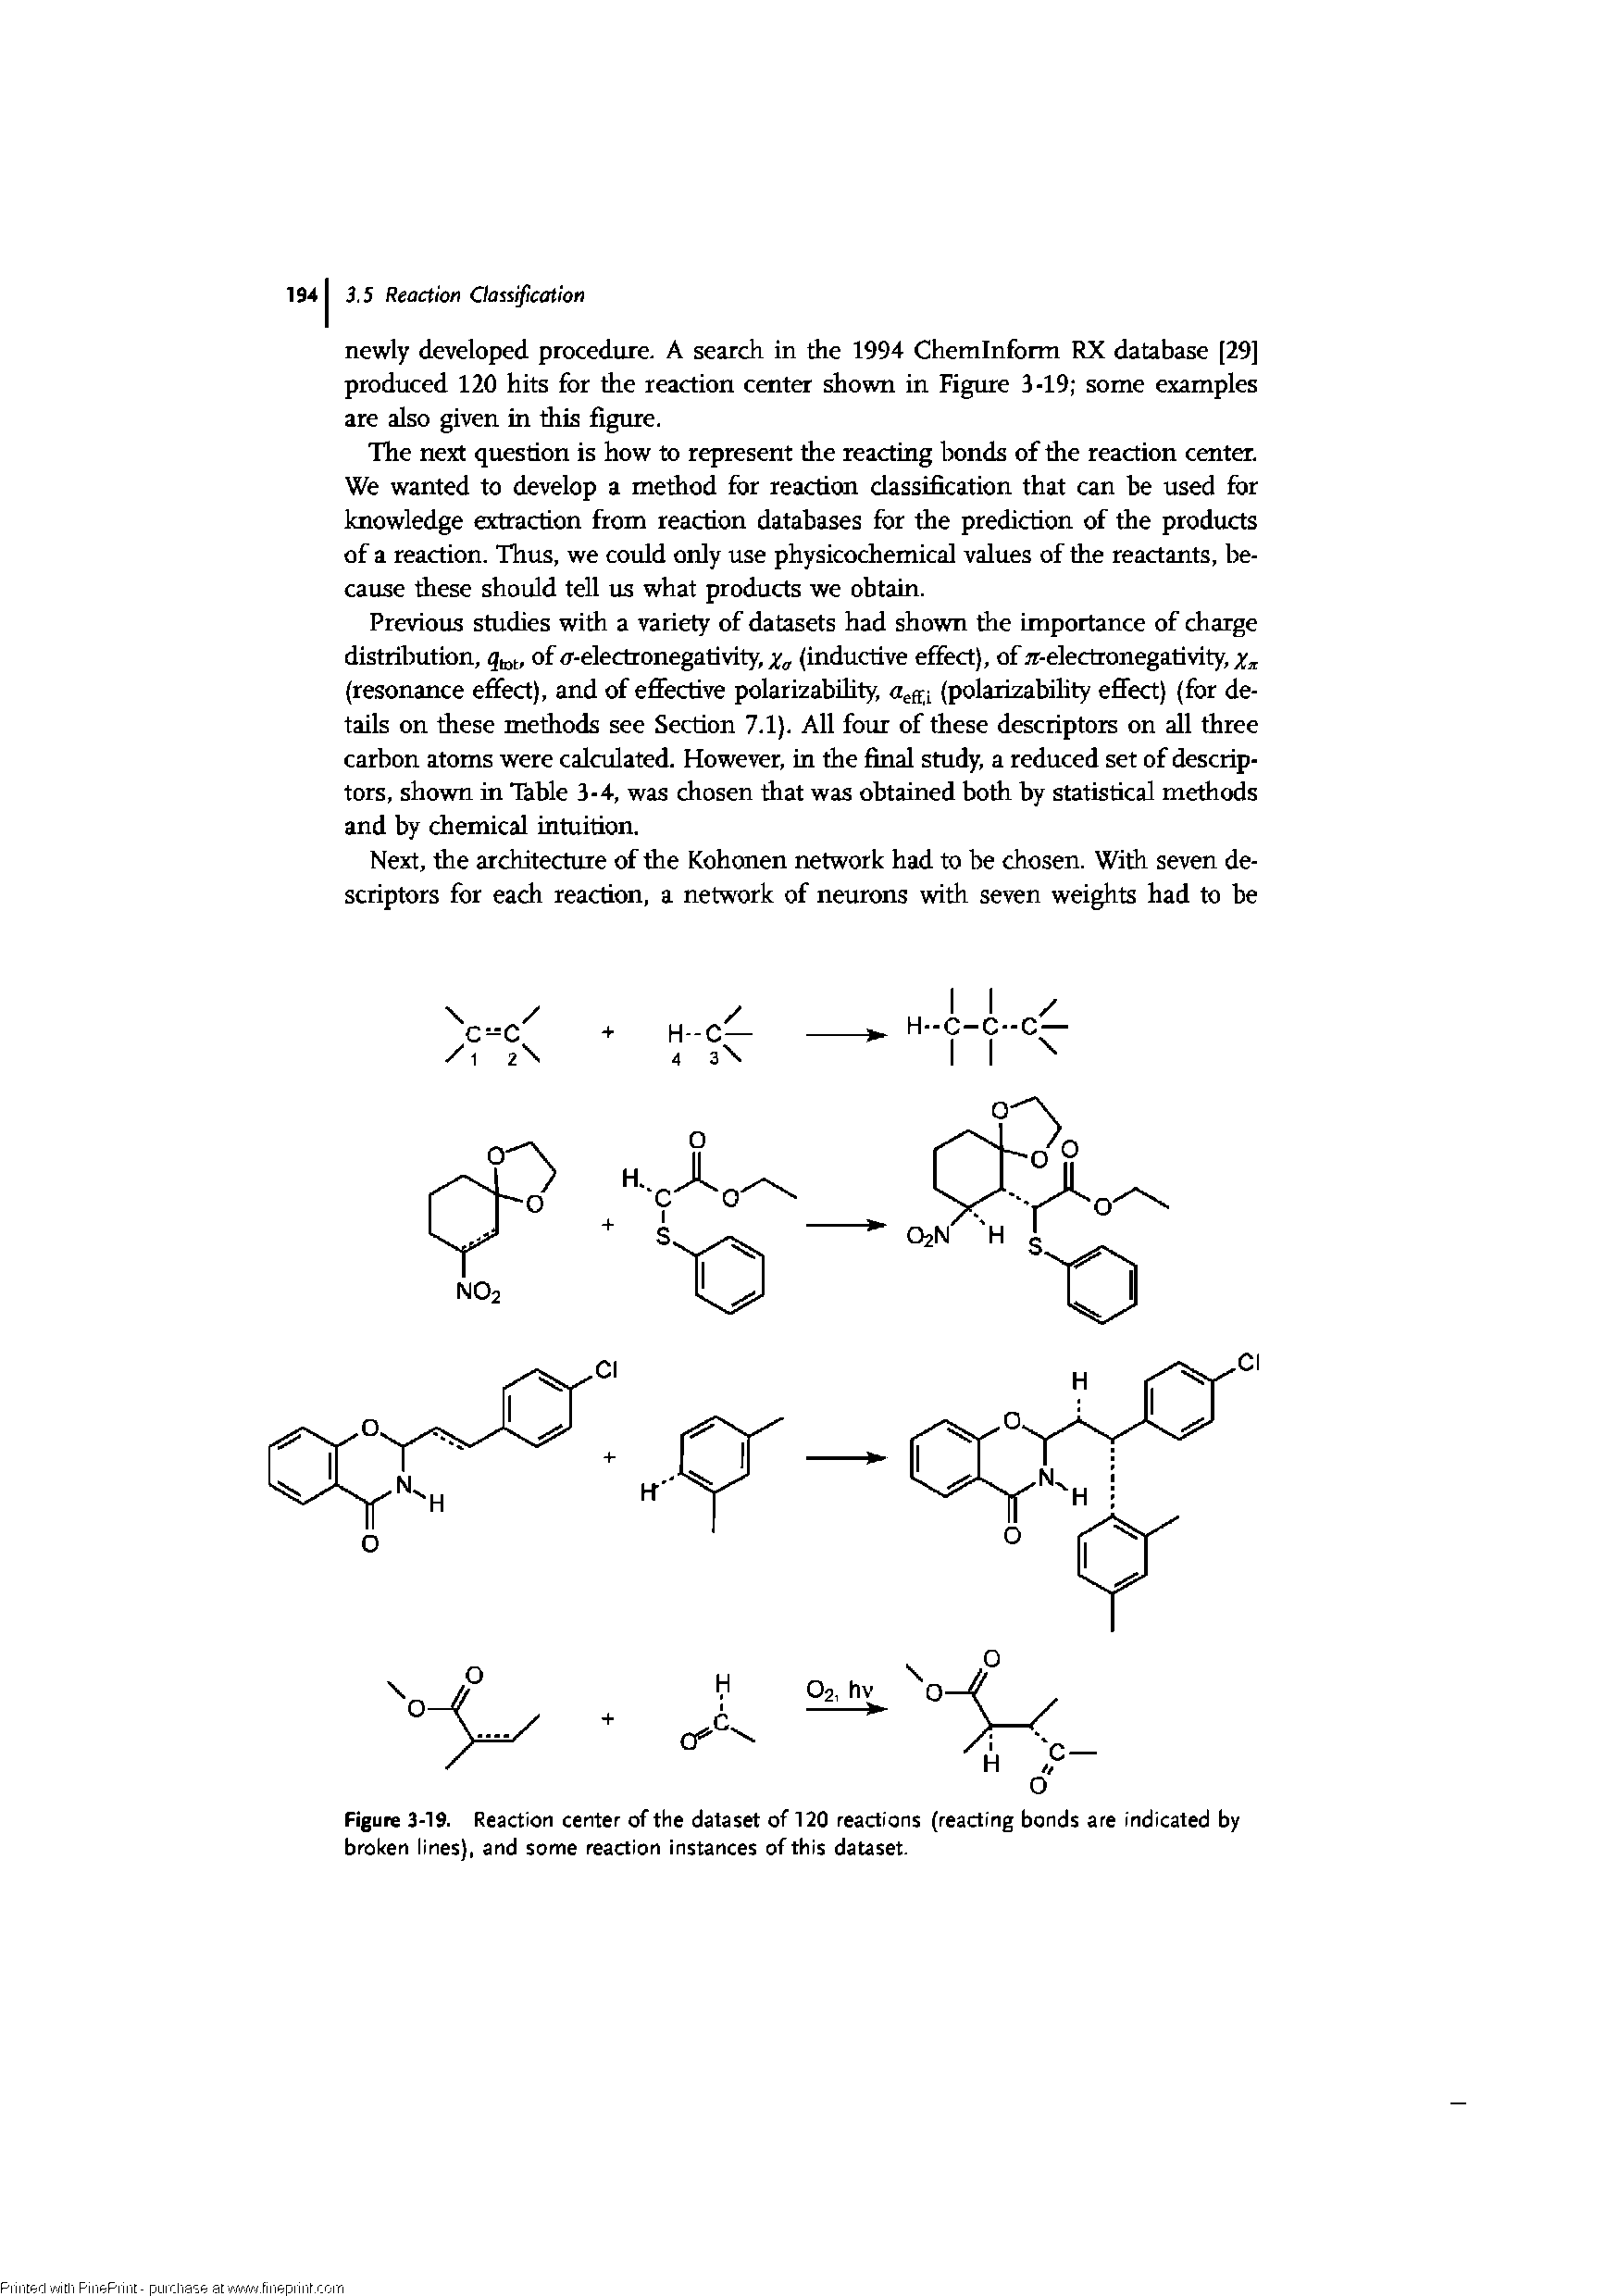 "Figure 3-19. Reaction center of the dataset of 120 reactions (reacting bonds are indicated by <a href=""/info/broken_line"">broken lines</a>), and <a href=""/info/some_reactions_of_eaq"">some reaction</a> instances of this dataset."